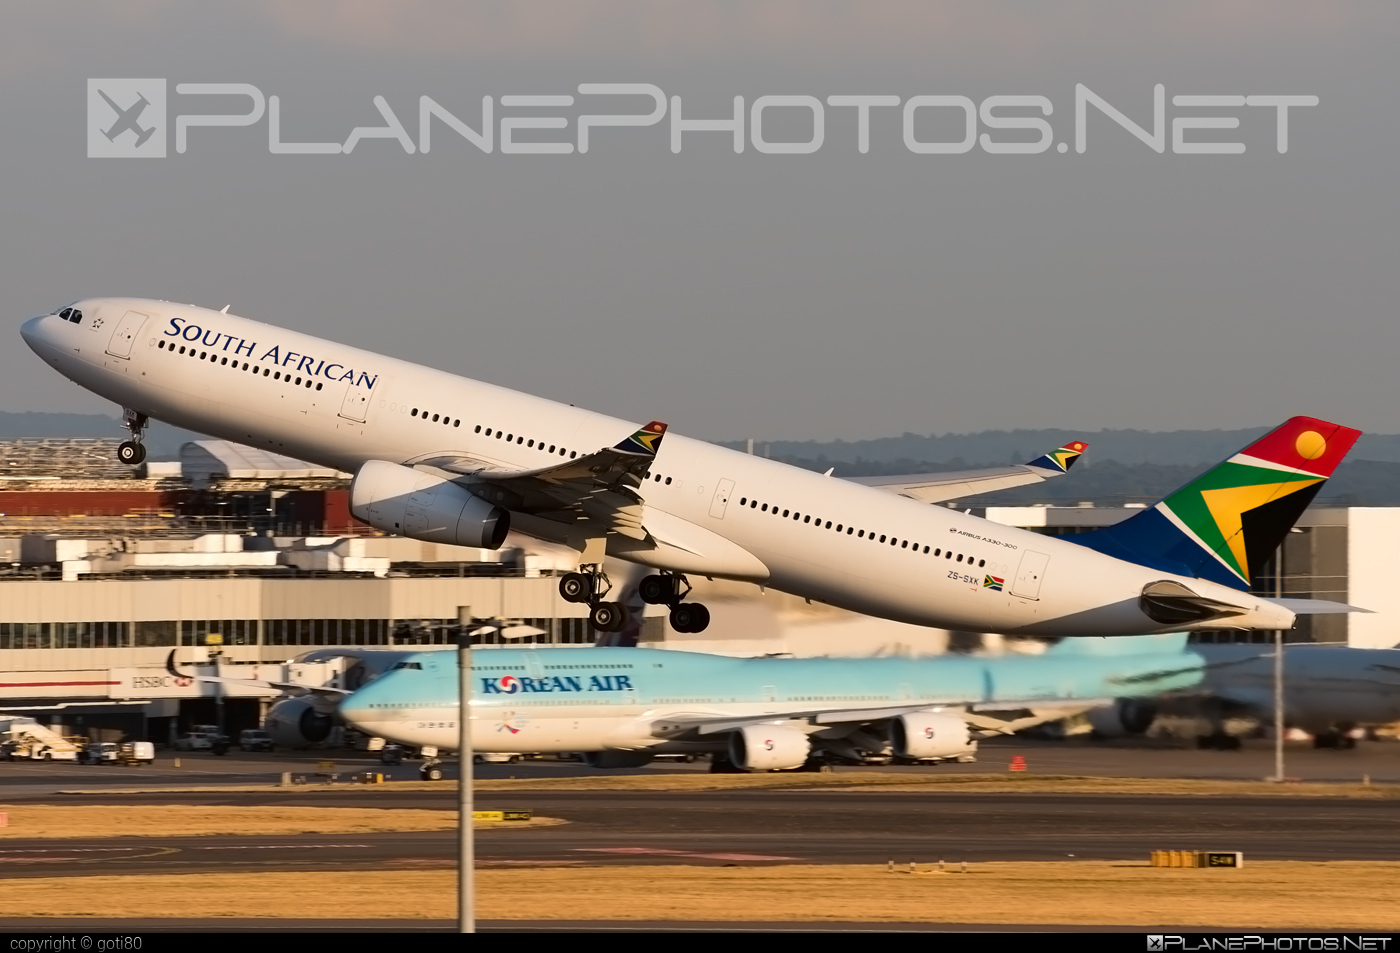 Airbus A330-343E - ZS-SXK operated by South African Airways #a330 #a330e #a330family #airbus #airbus330